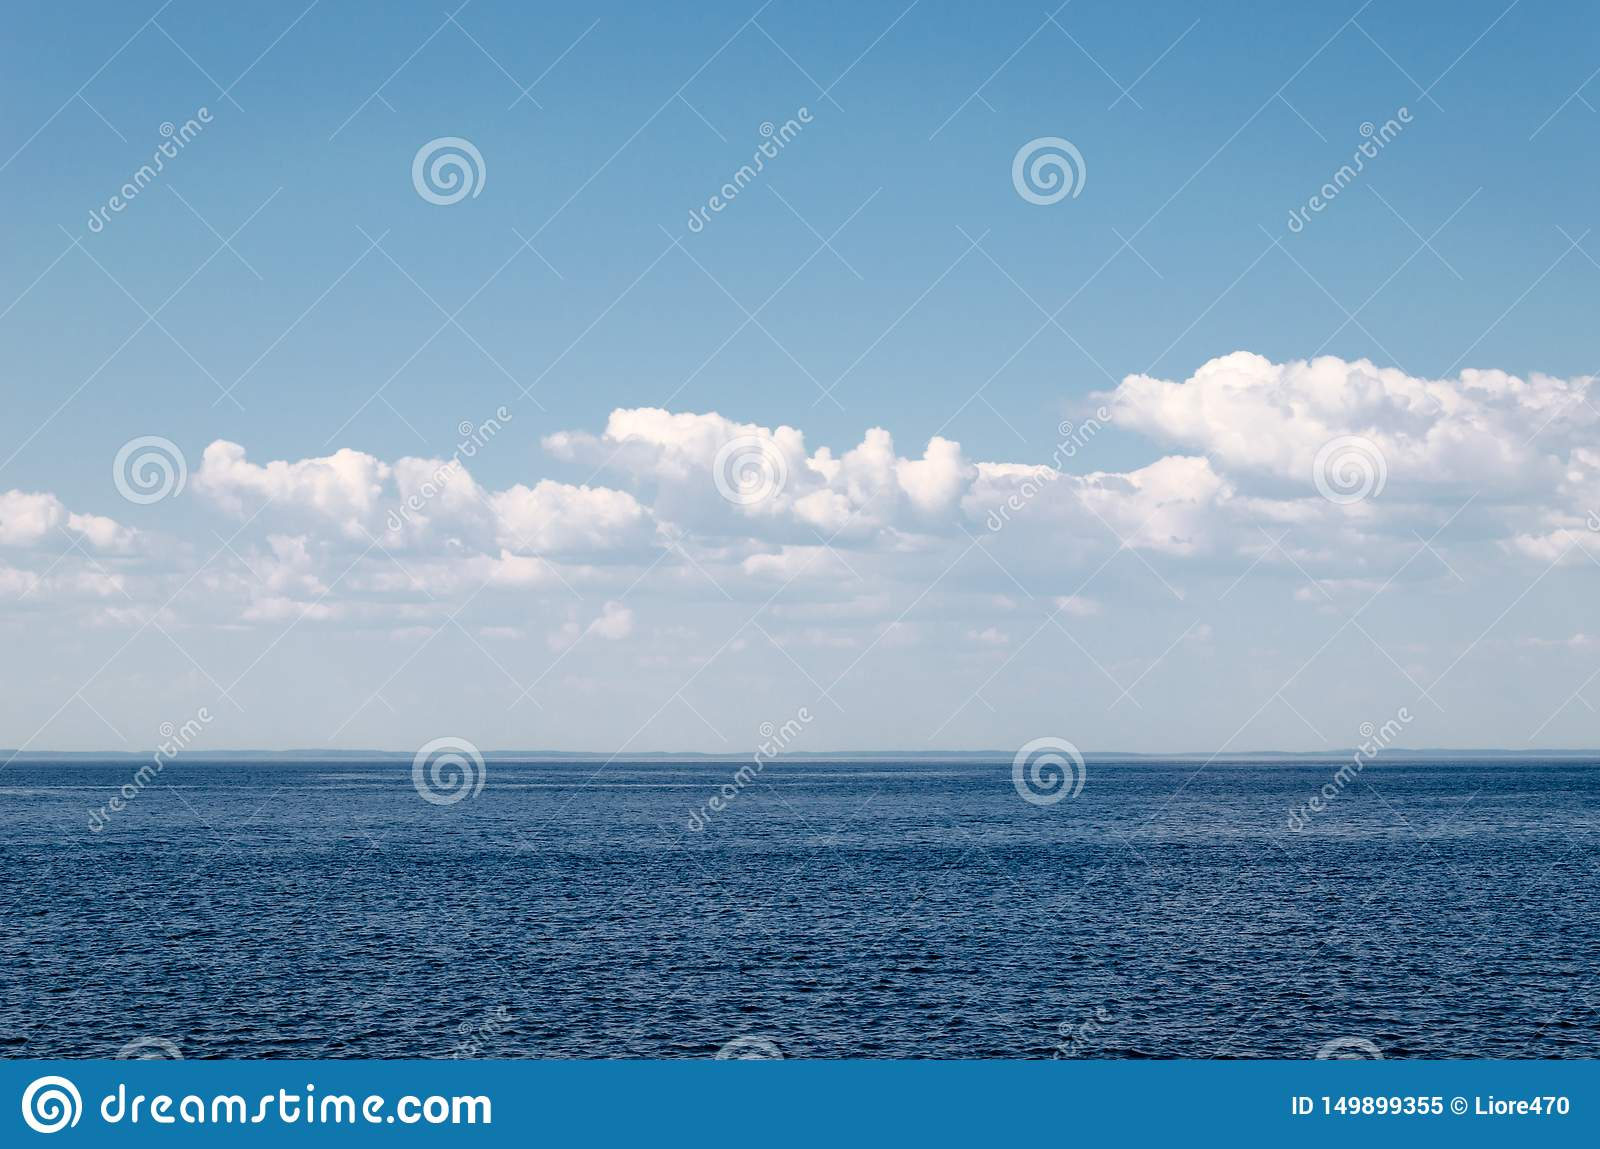 Calm sea on a background of blue sky with cloudsCalm sea against blue sky with clouds. Harmony of sea elements. Seascape. Copy